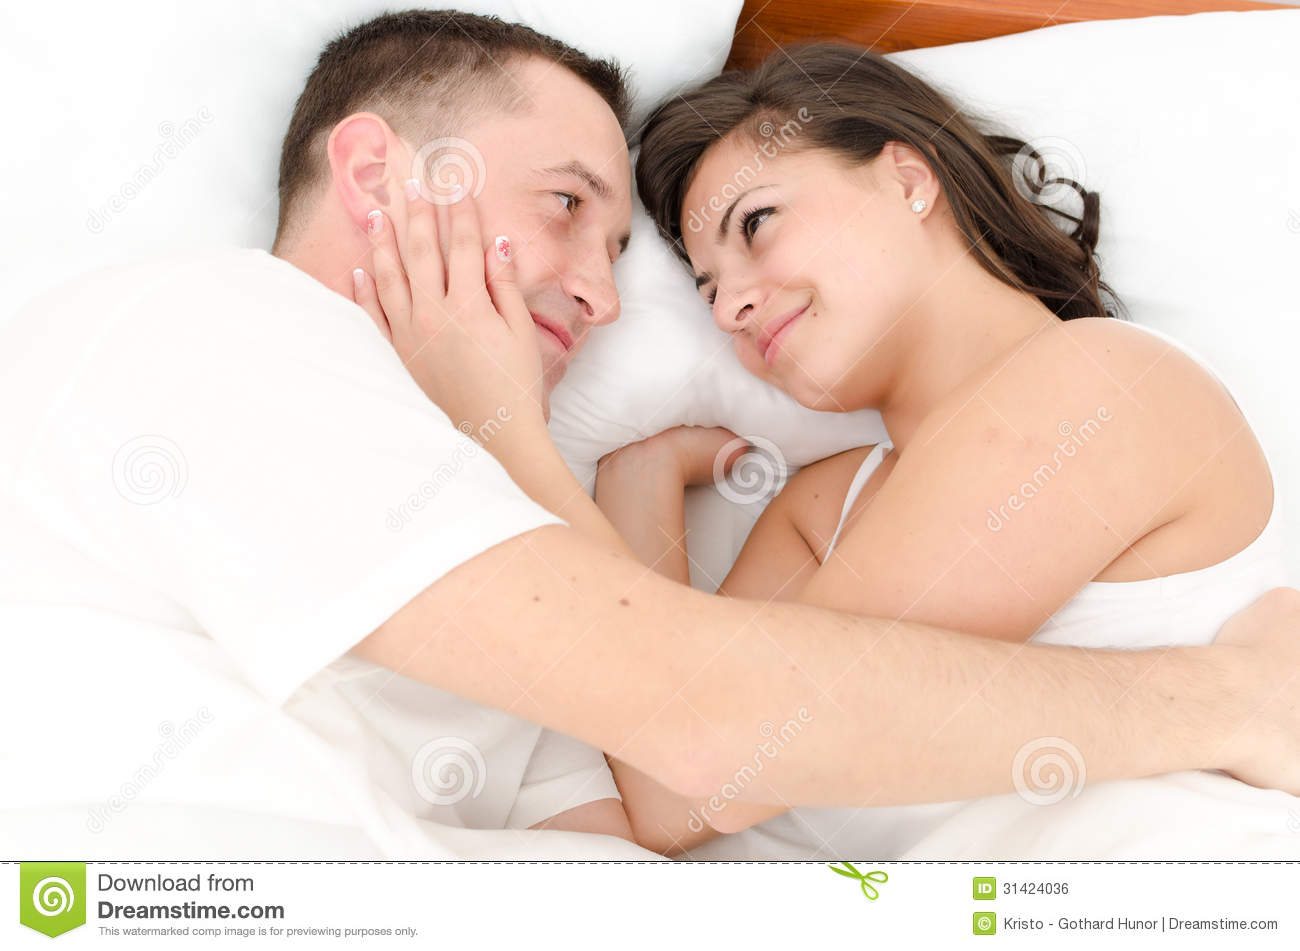 Picture of man and woman in bed